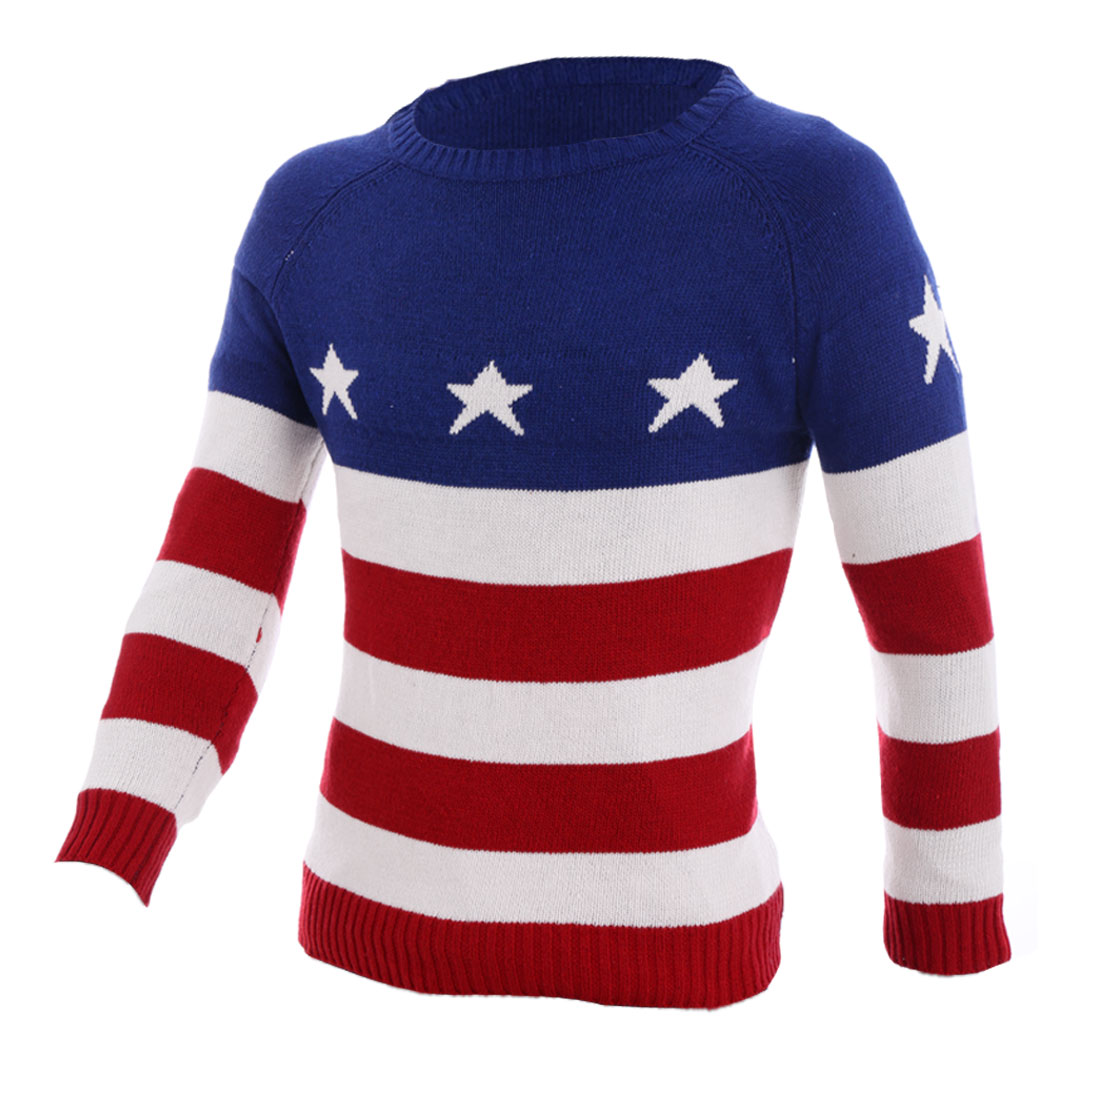 Men's Round Neck Star Pattern Stripes Long Sleeves Multicolor Sweater M